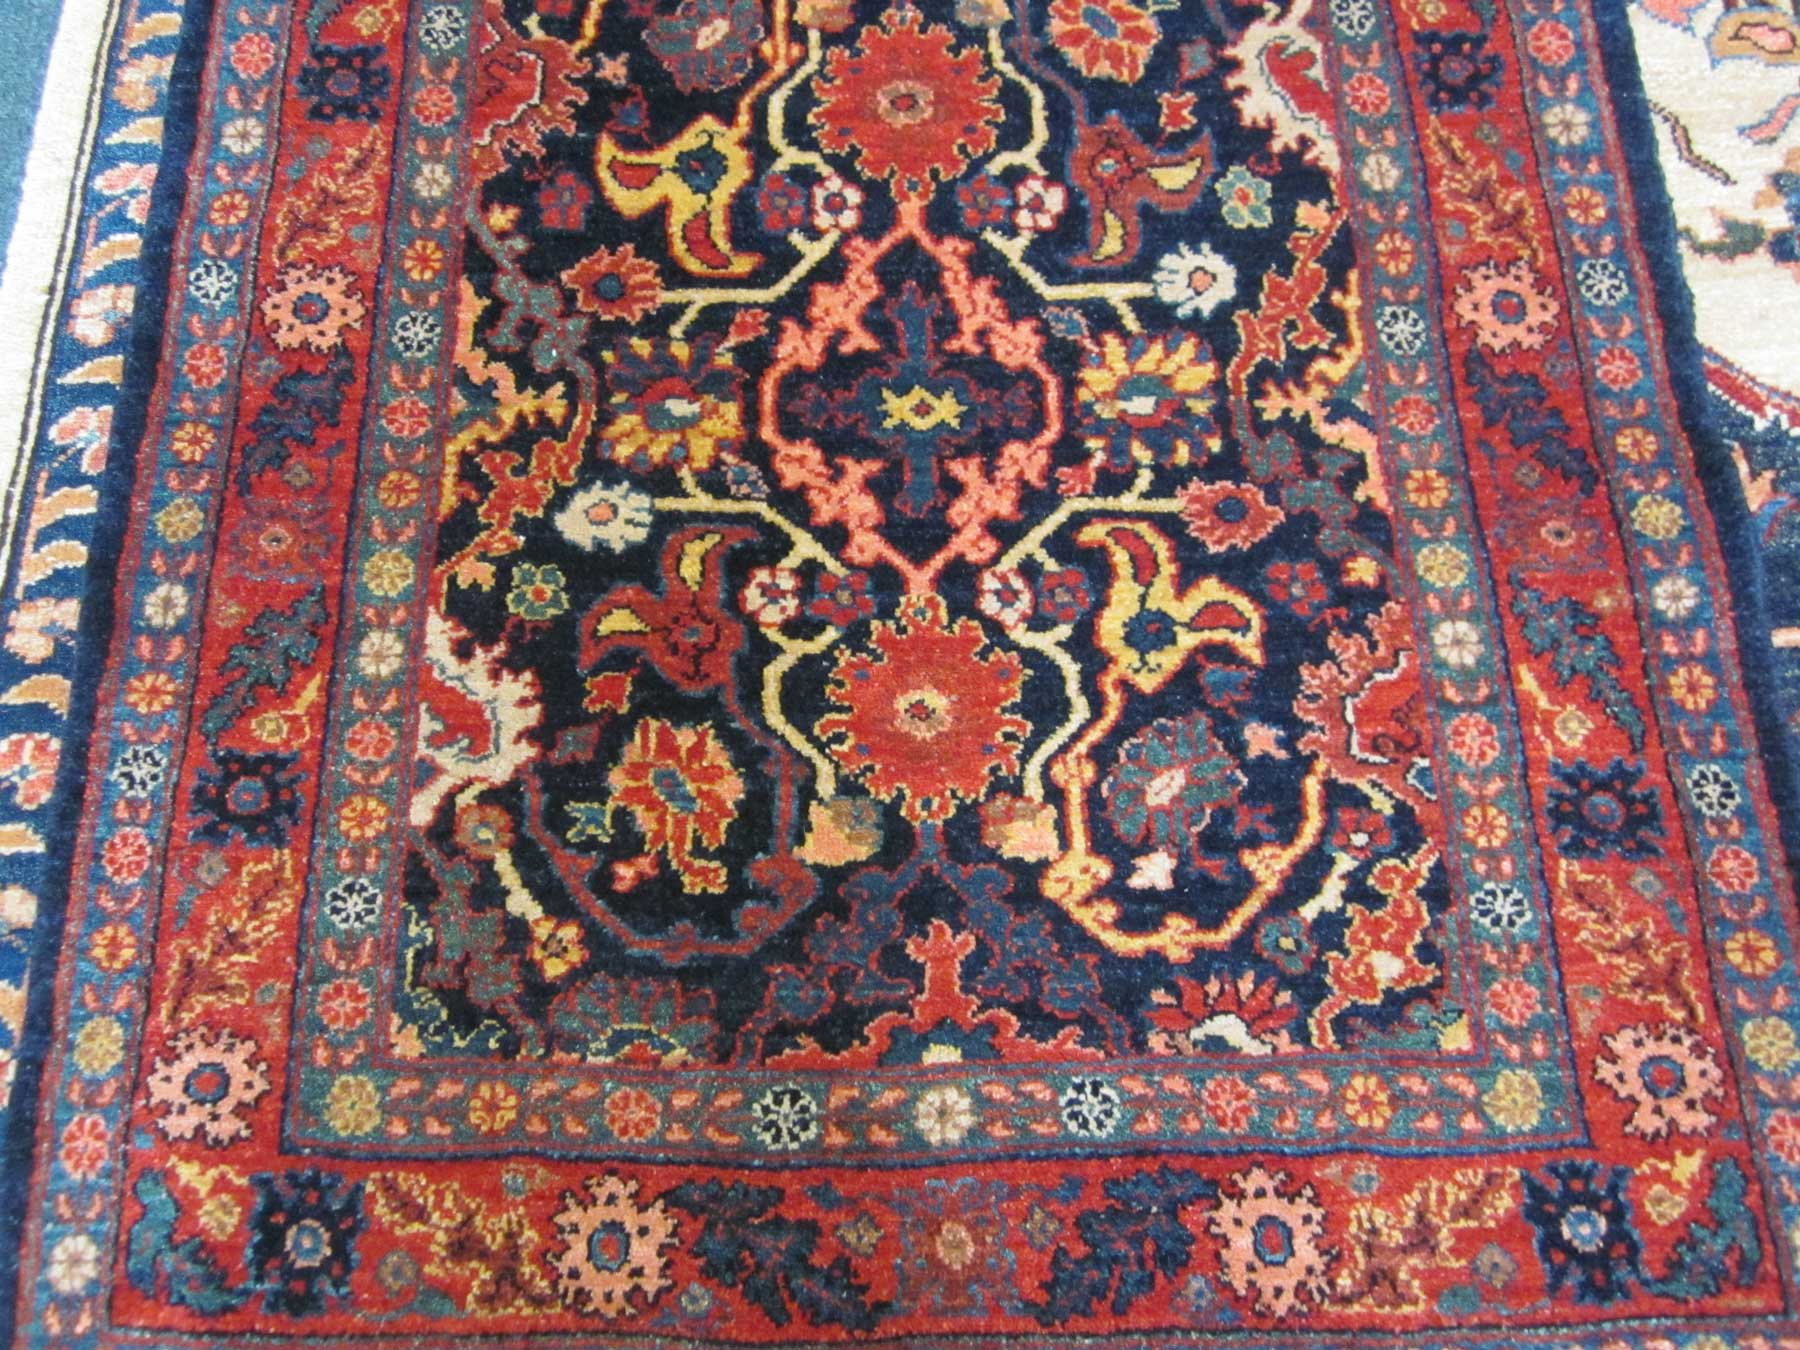 Bijar runner. Navy ground with deep madder red, golden yellow, light blue and ivory accents. Gorgeous runner woven in Bijar, Iran by Kurdish weavers!